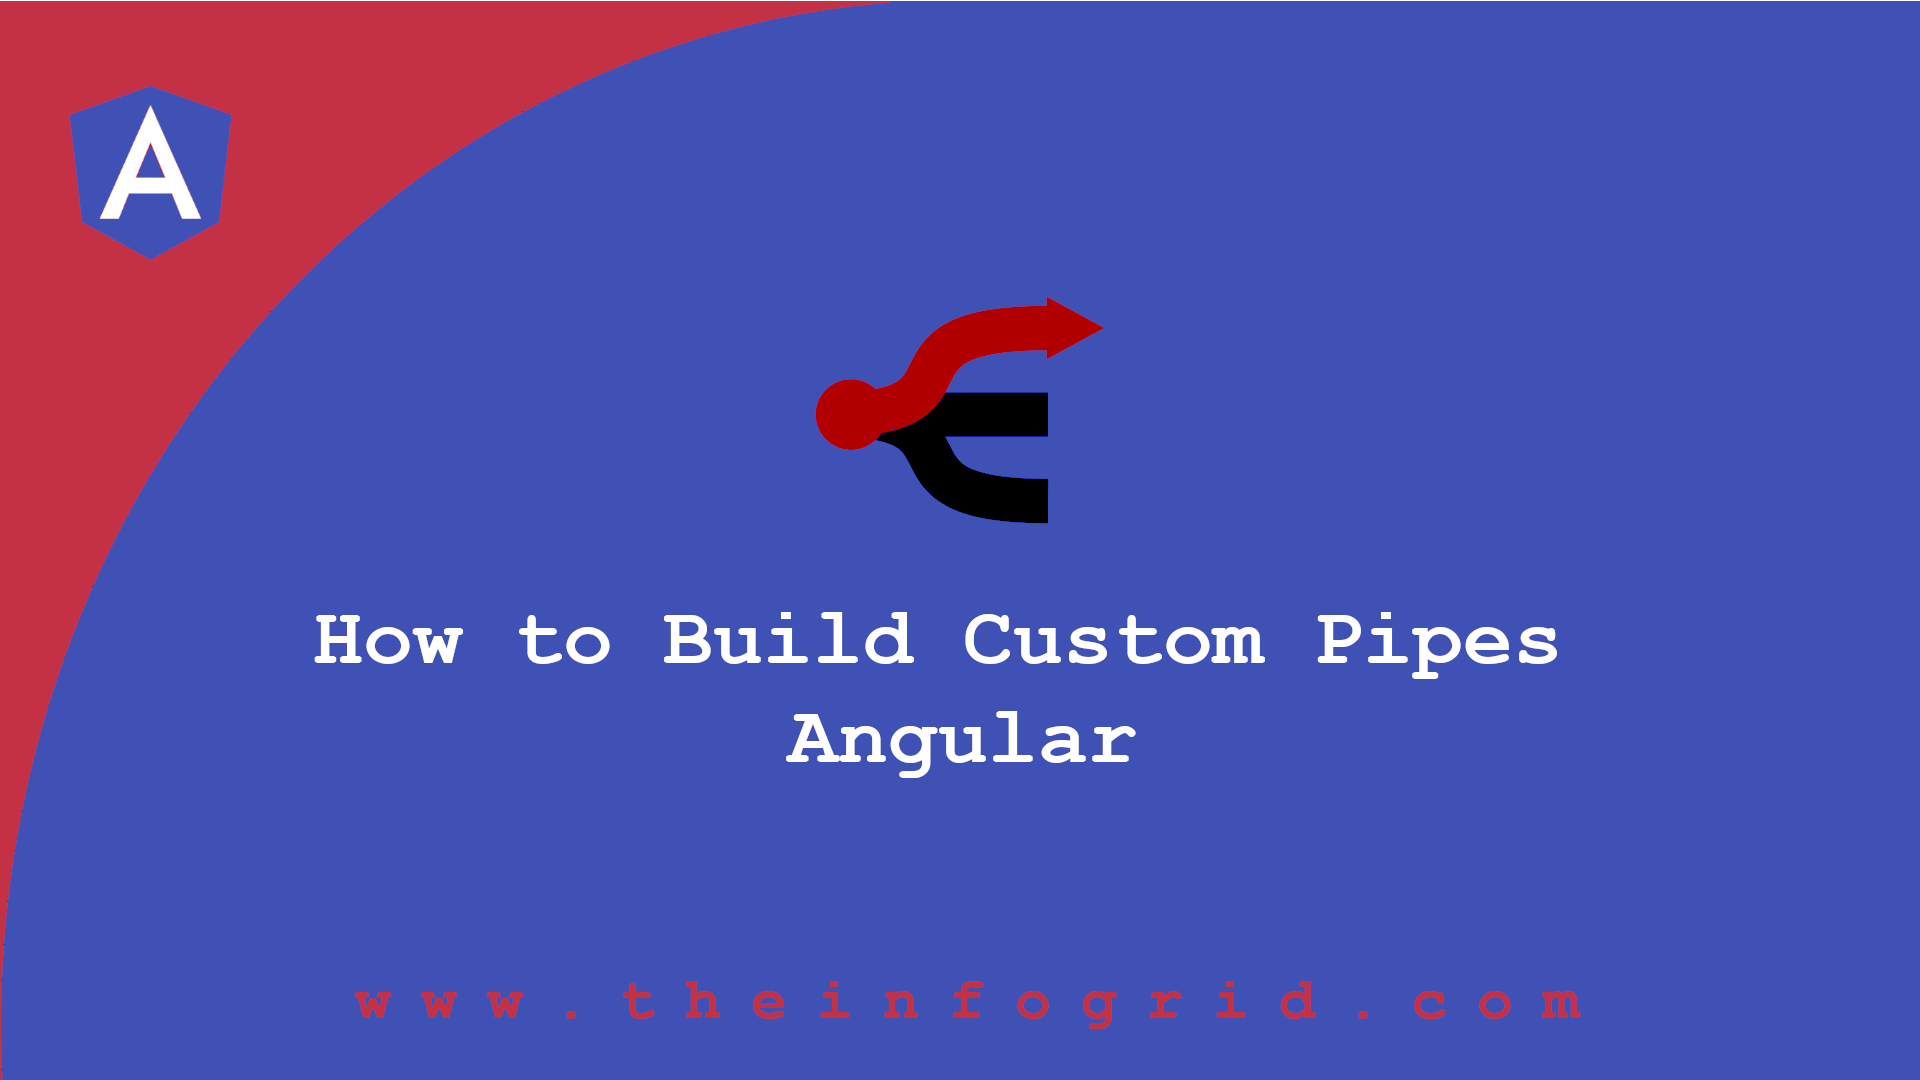 How to Build Custom Pipes in Angular